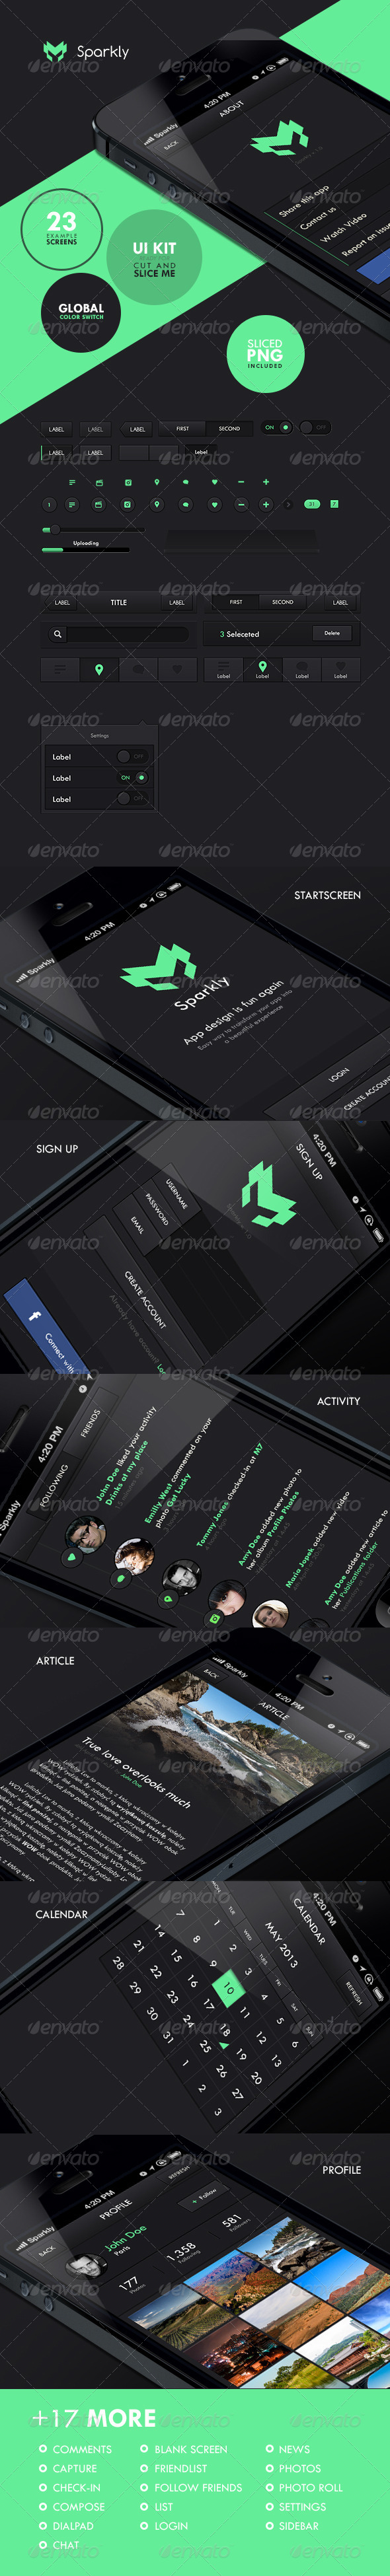 GraphicRiver Sparkly iOS UI Set 5417276